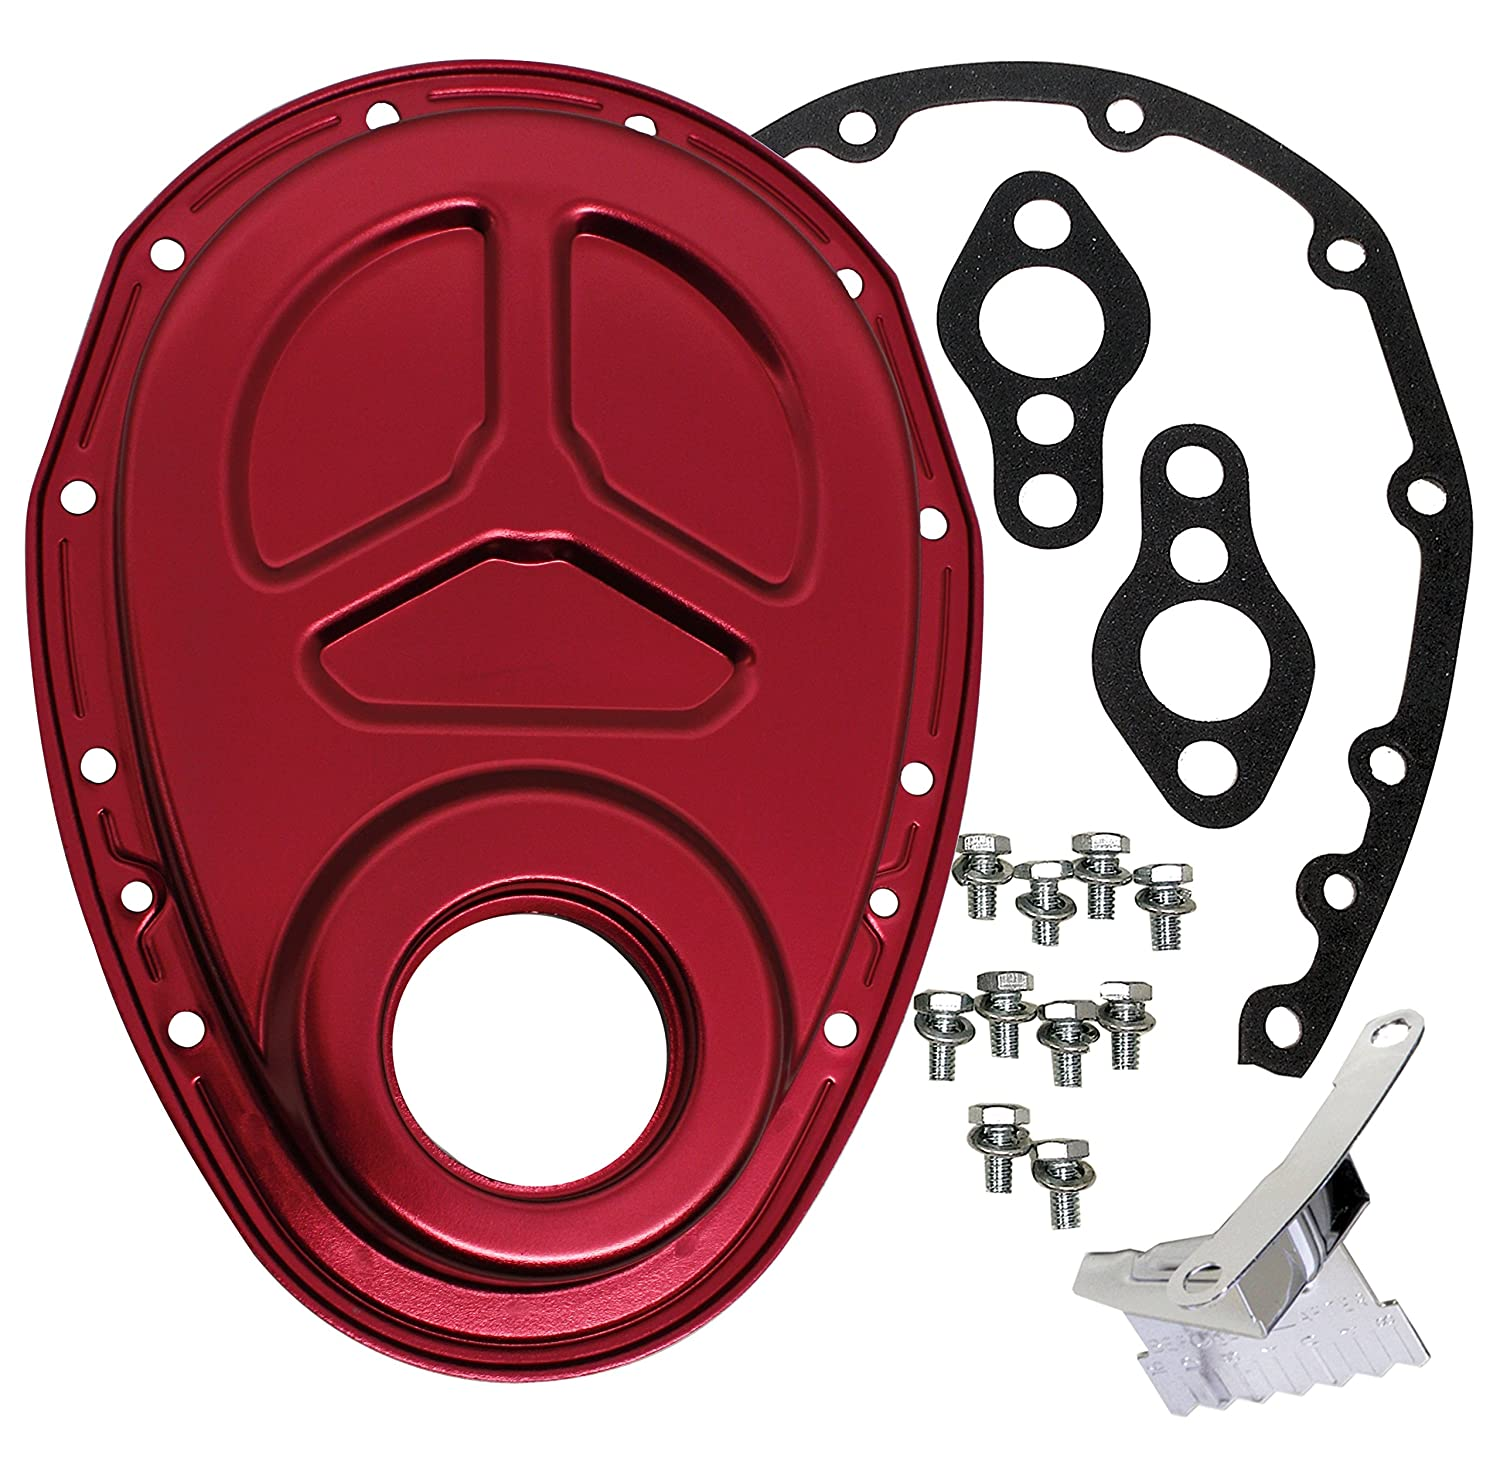 1955-95 CHEVY SMALL BLOCK 283-305-327-350-400 ALUMINUM TIMING CHAIN COVER SET (ROLLER CAM) - RED CFR Performance